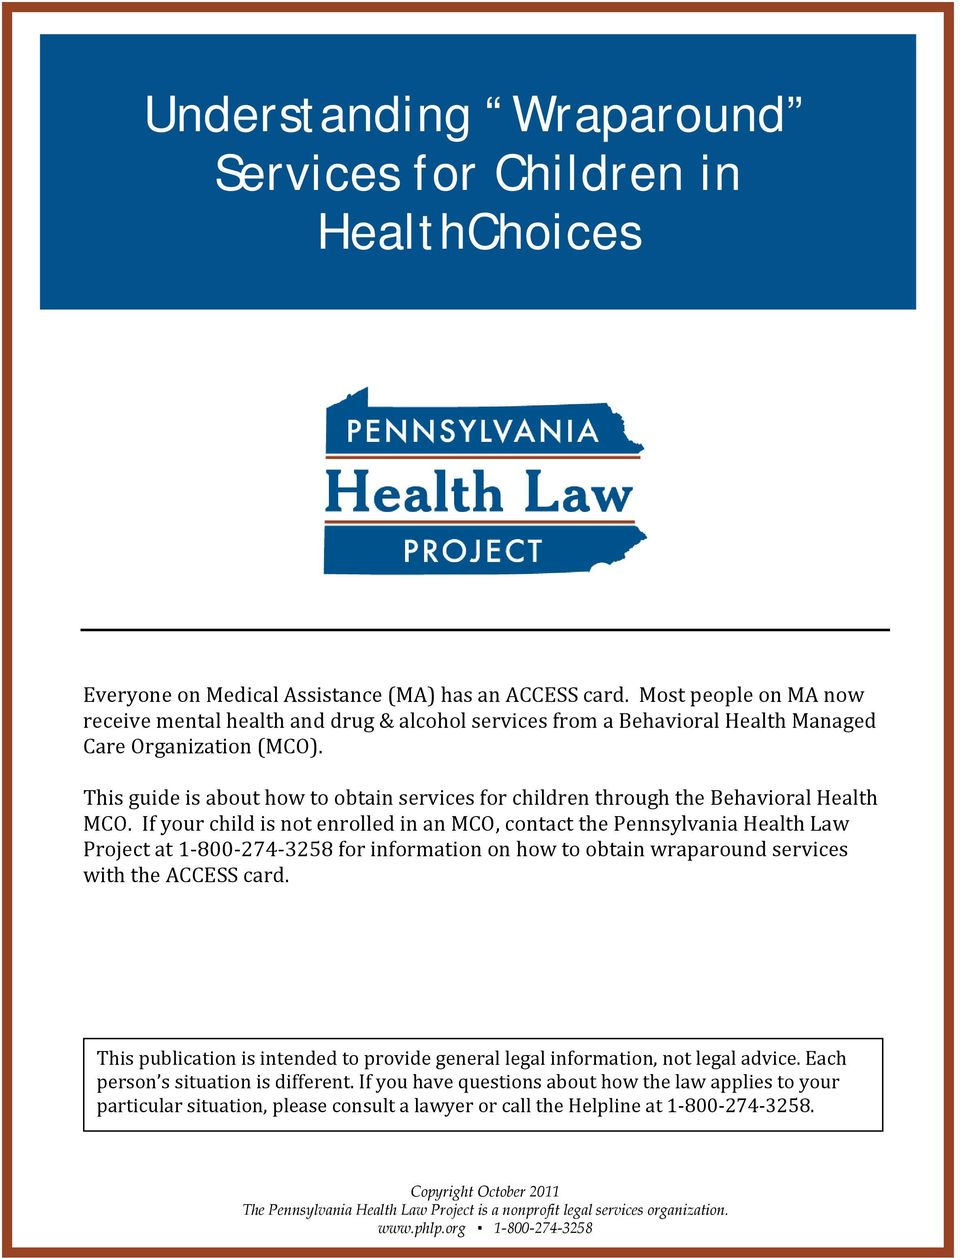 This guide is about how to obtain services for children through the Behavioral Health MCO.